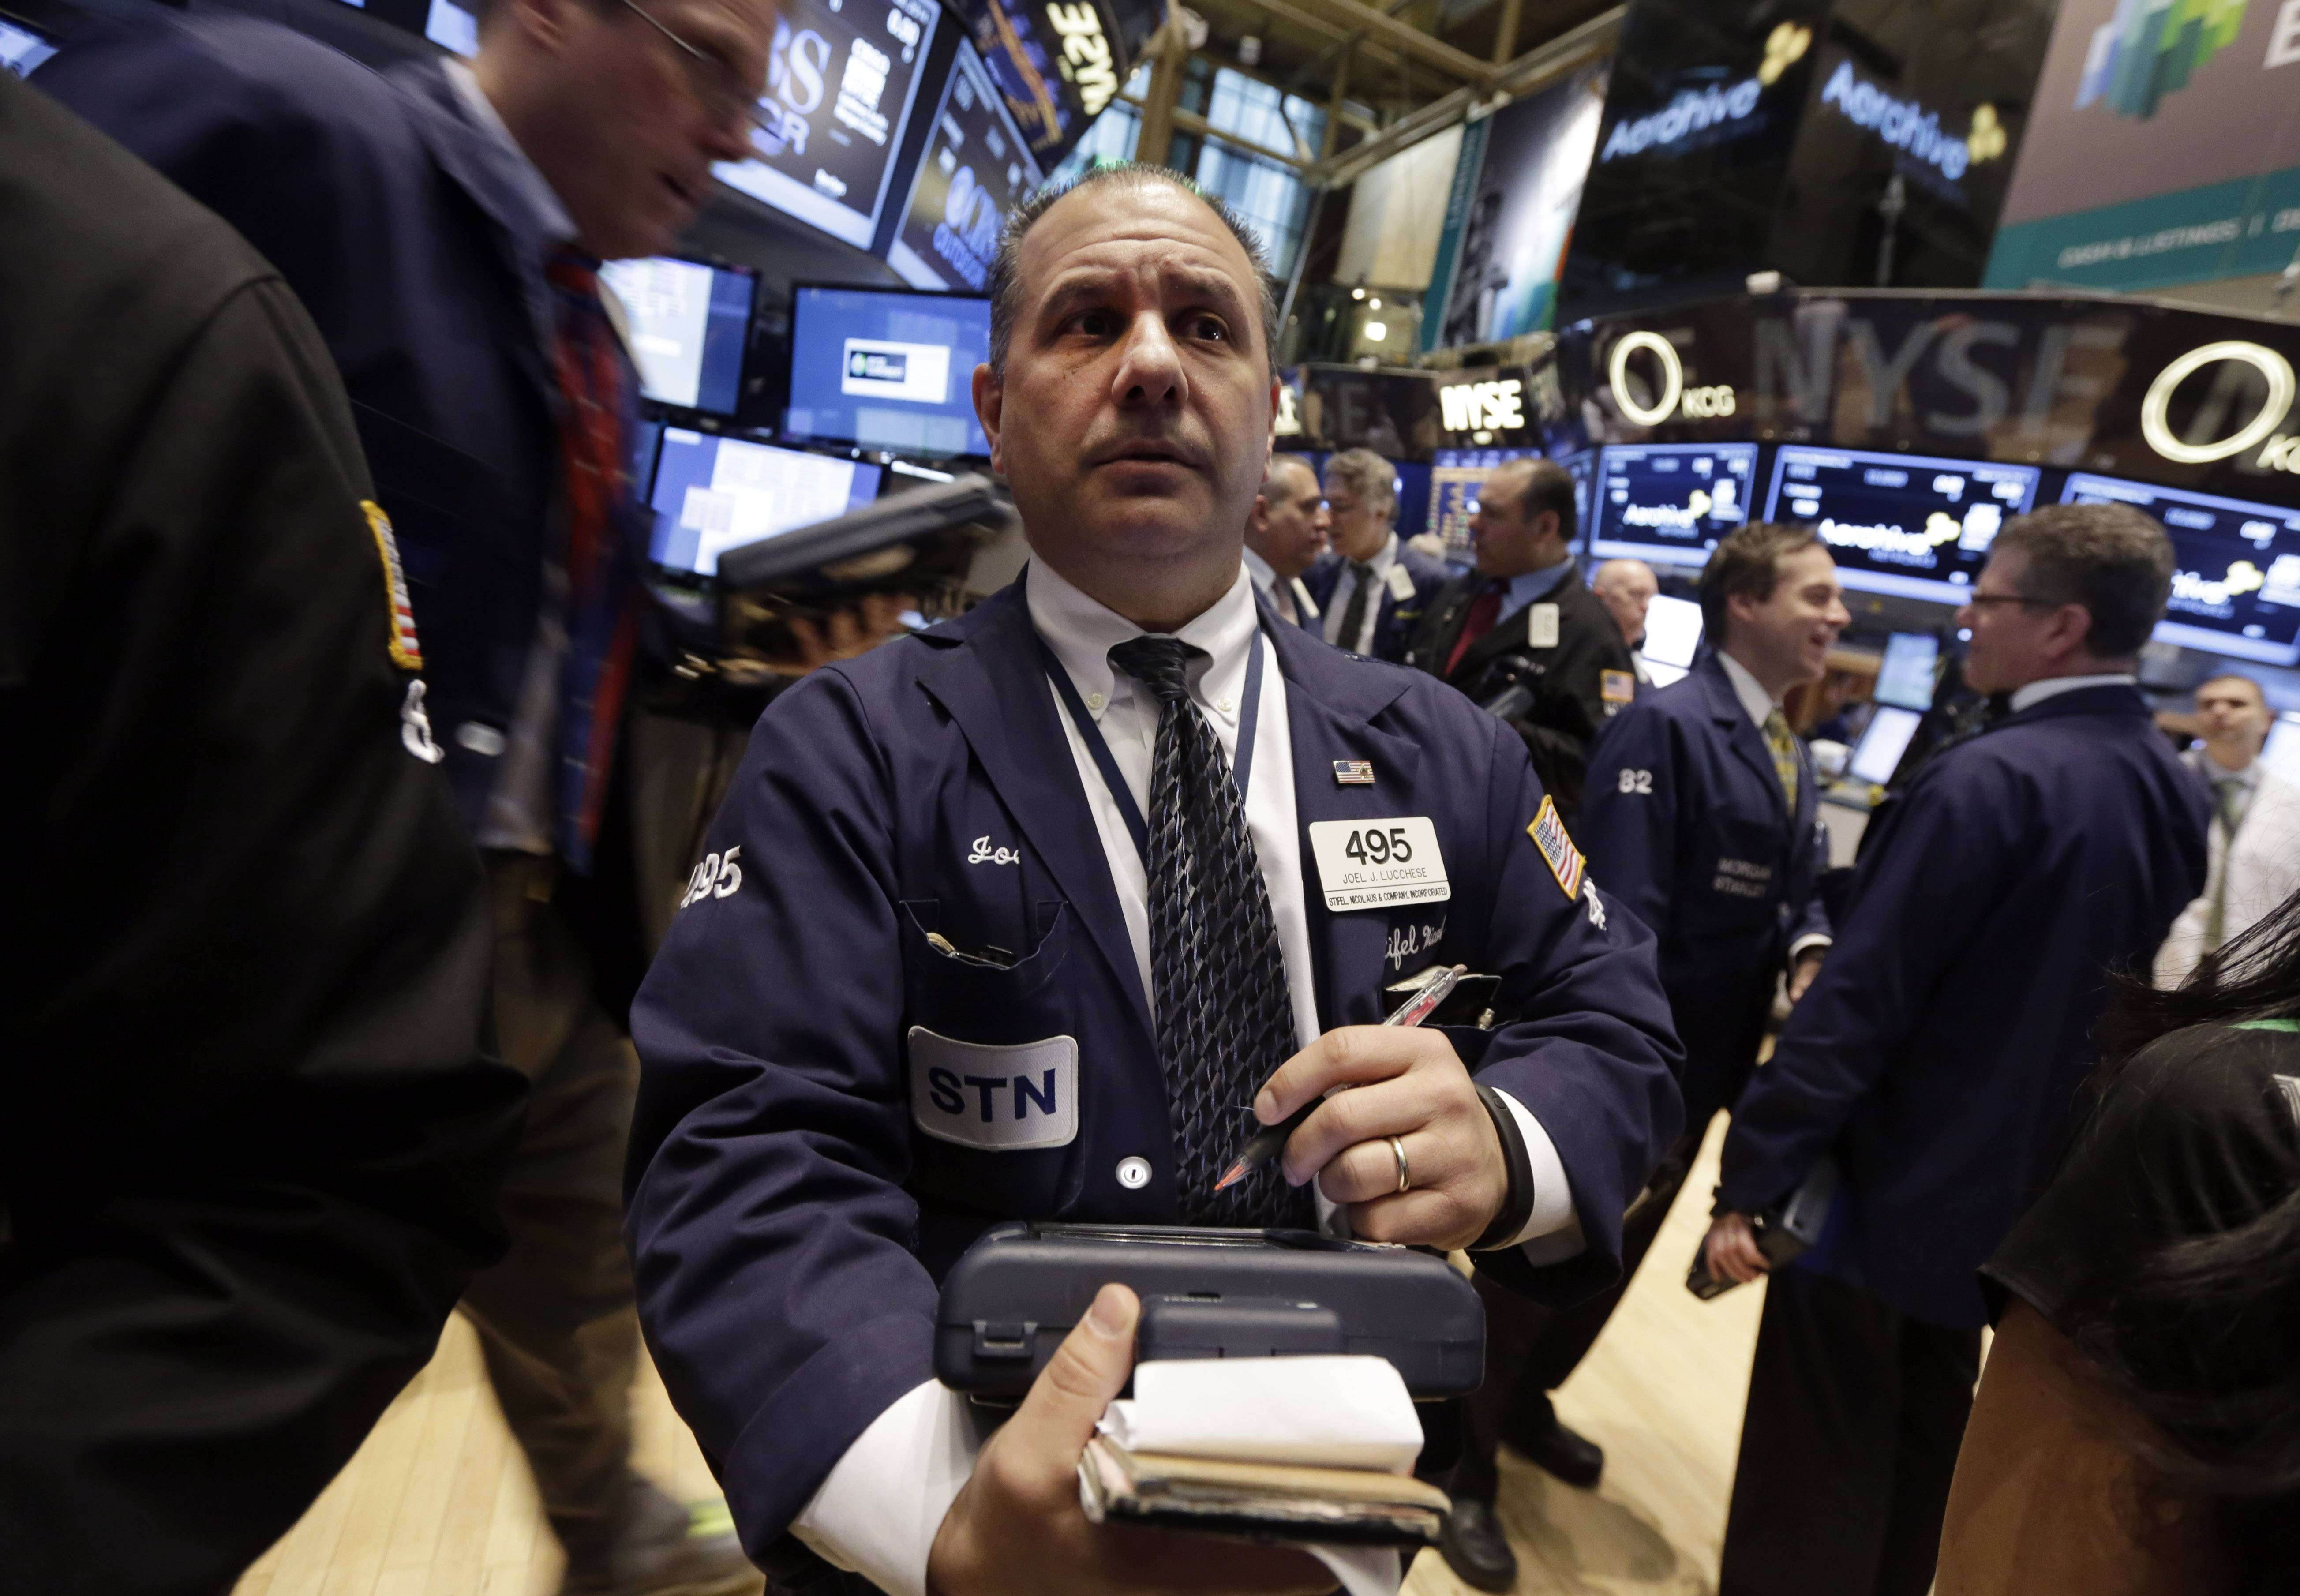 Stocks climbed Monday, with the Standard & Poor's 500 Index posting a fifth quarterly gain, as Federal Reserve Chair Janet Yellen signaled continued monetary support and tensions appeared to ease in Ukraine.